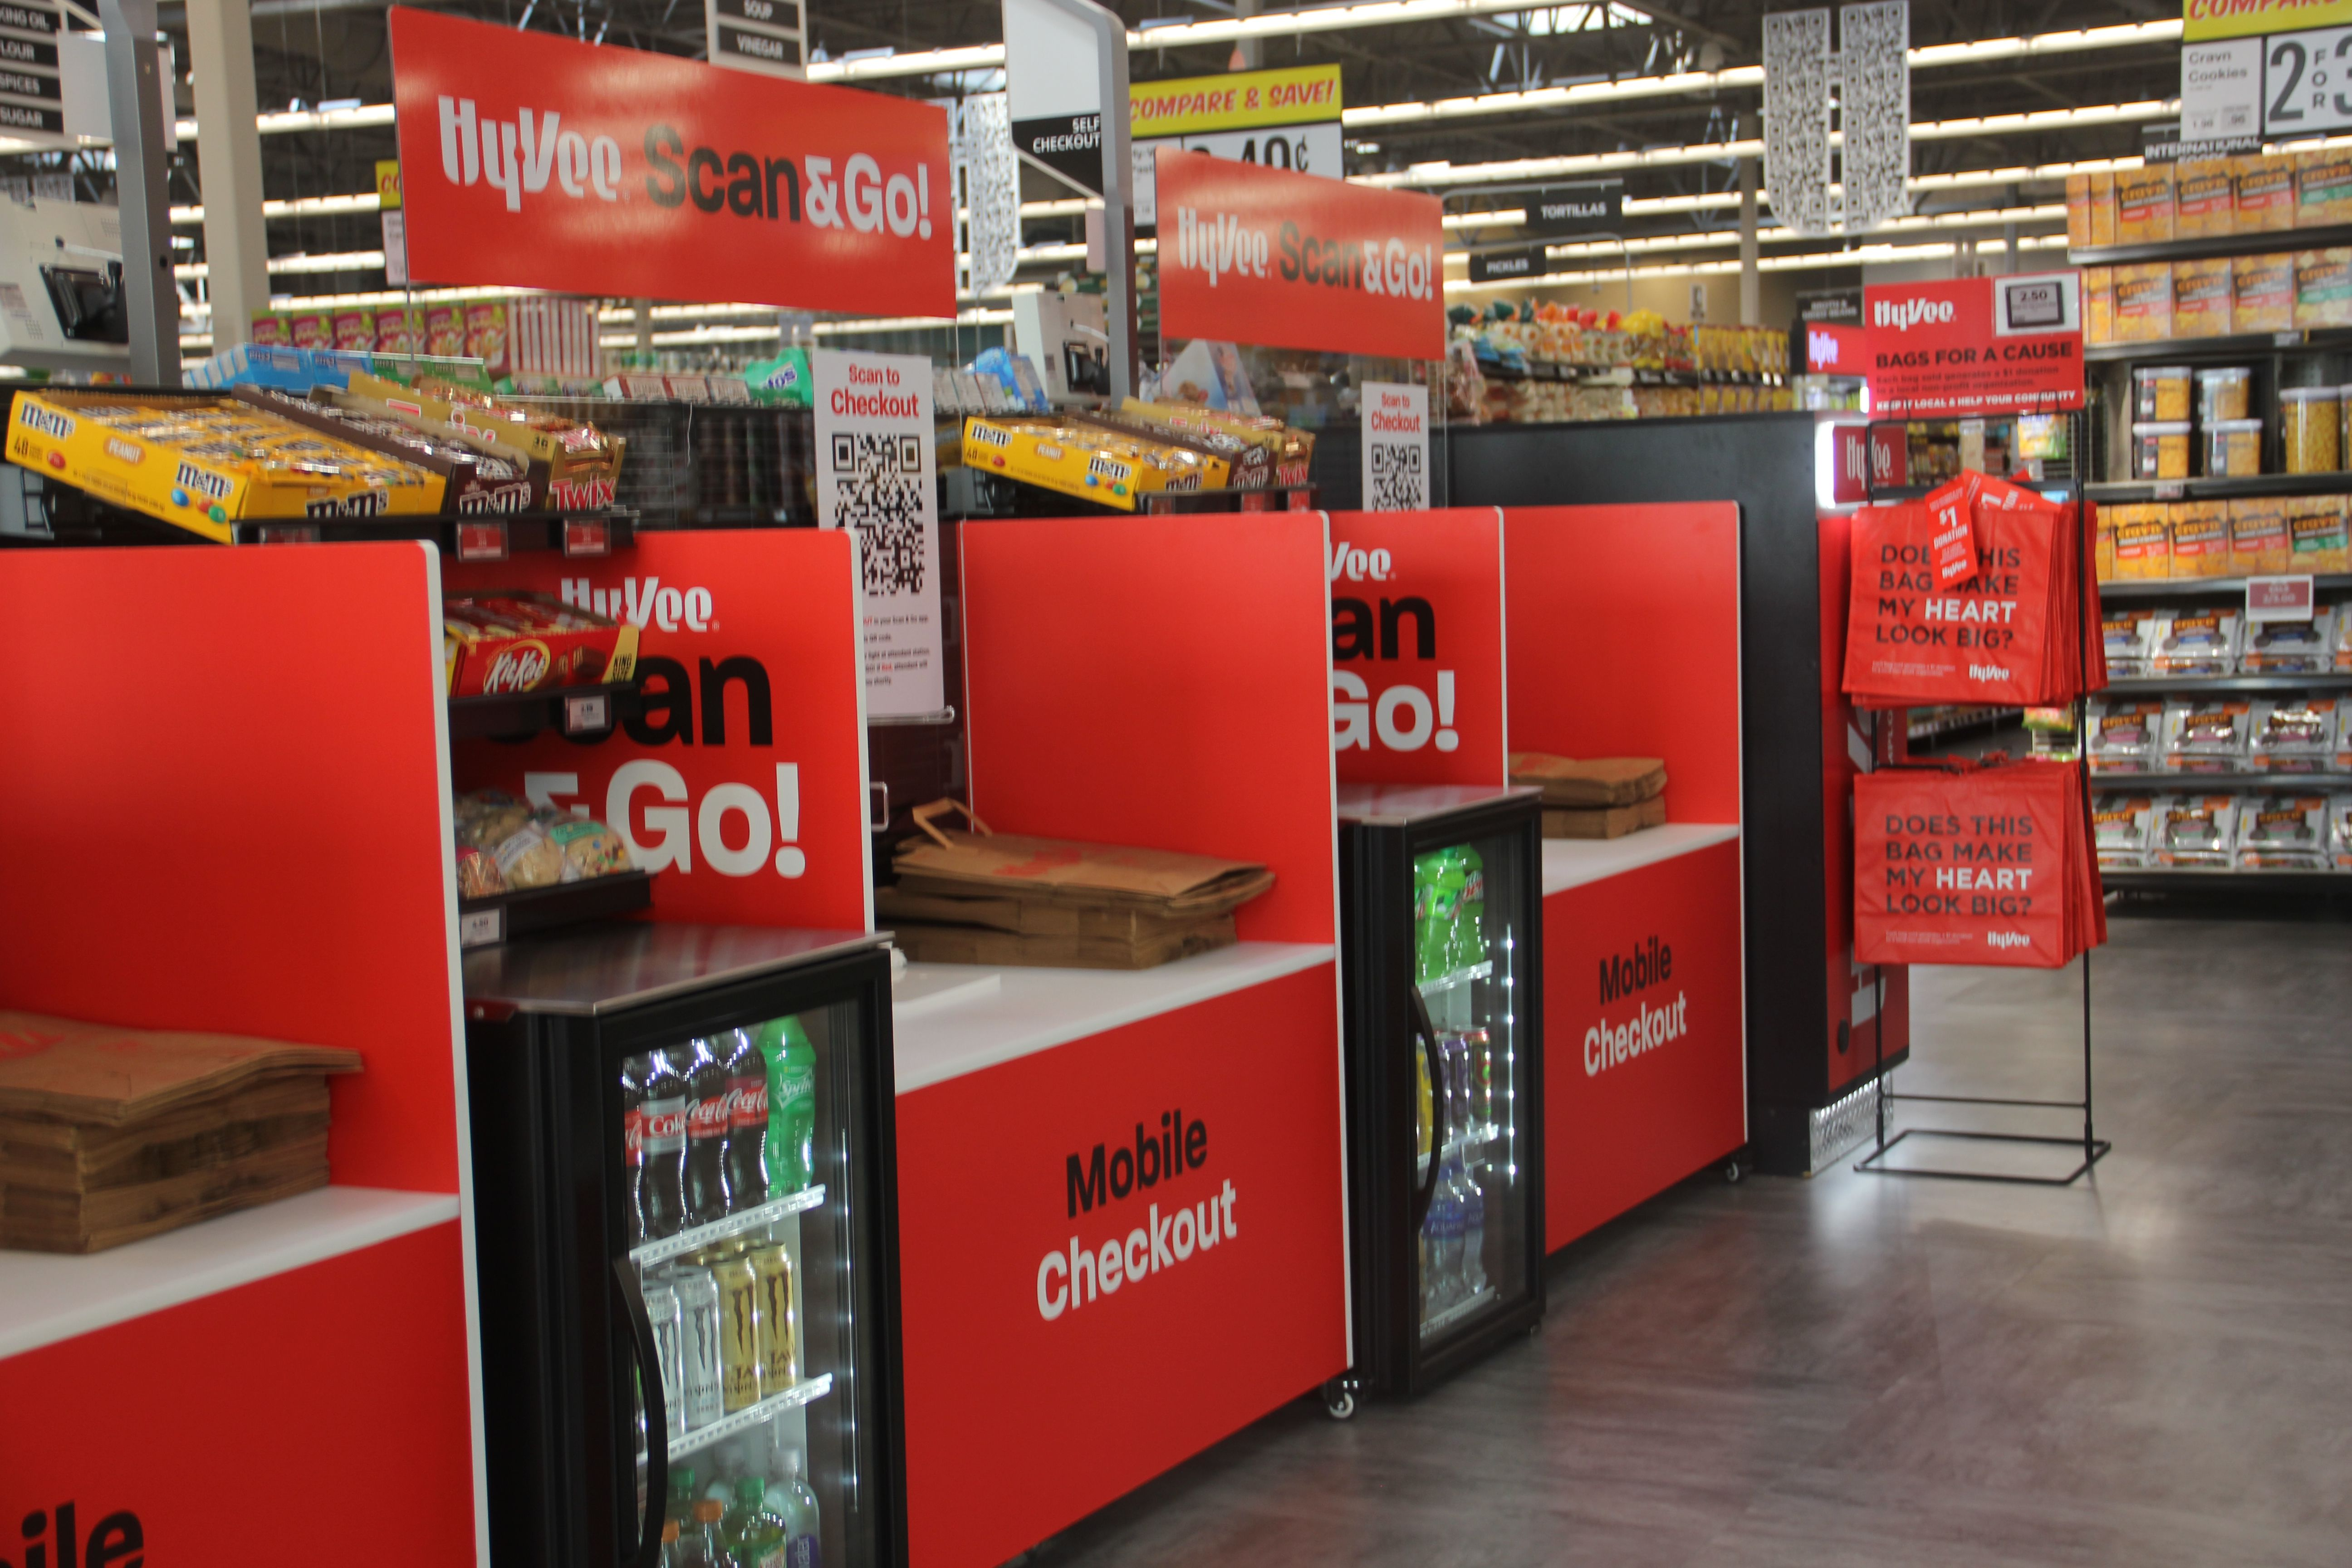 Hy-Vee Scan and Go